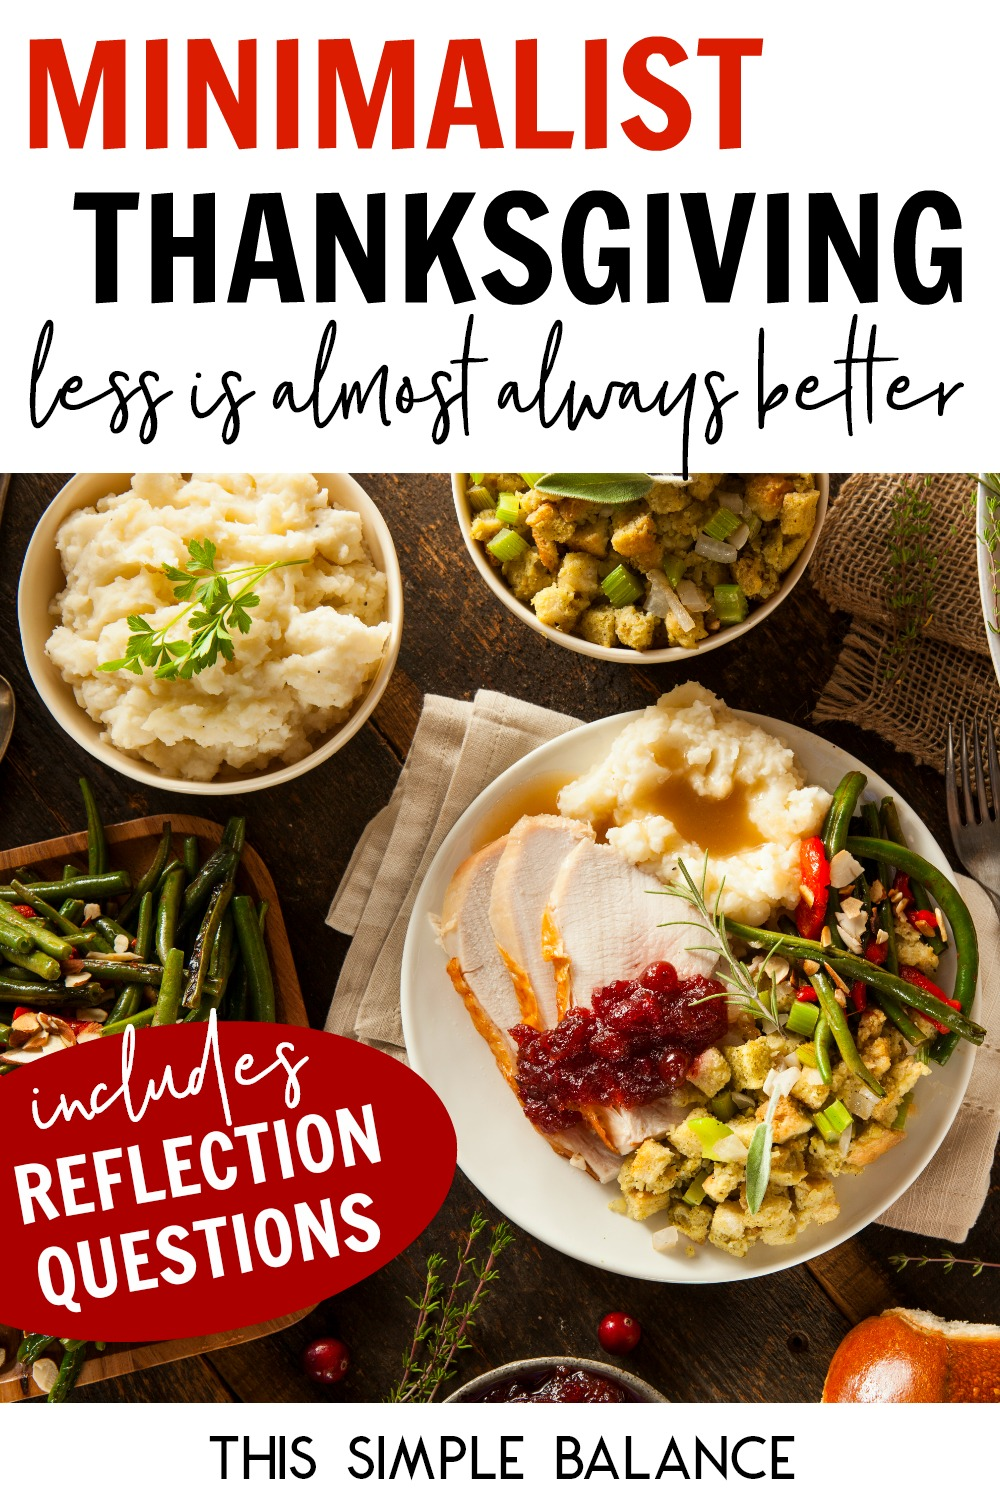 Afraid a minimalist Thanksgiving will make the holiday less meaningful? Reflections from a minimalist Thanksgiving and questions to help you decide what is essential for yours.